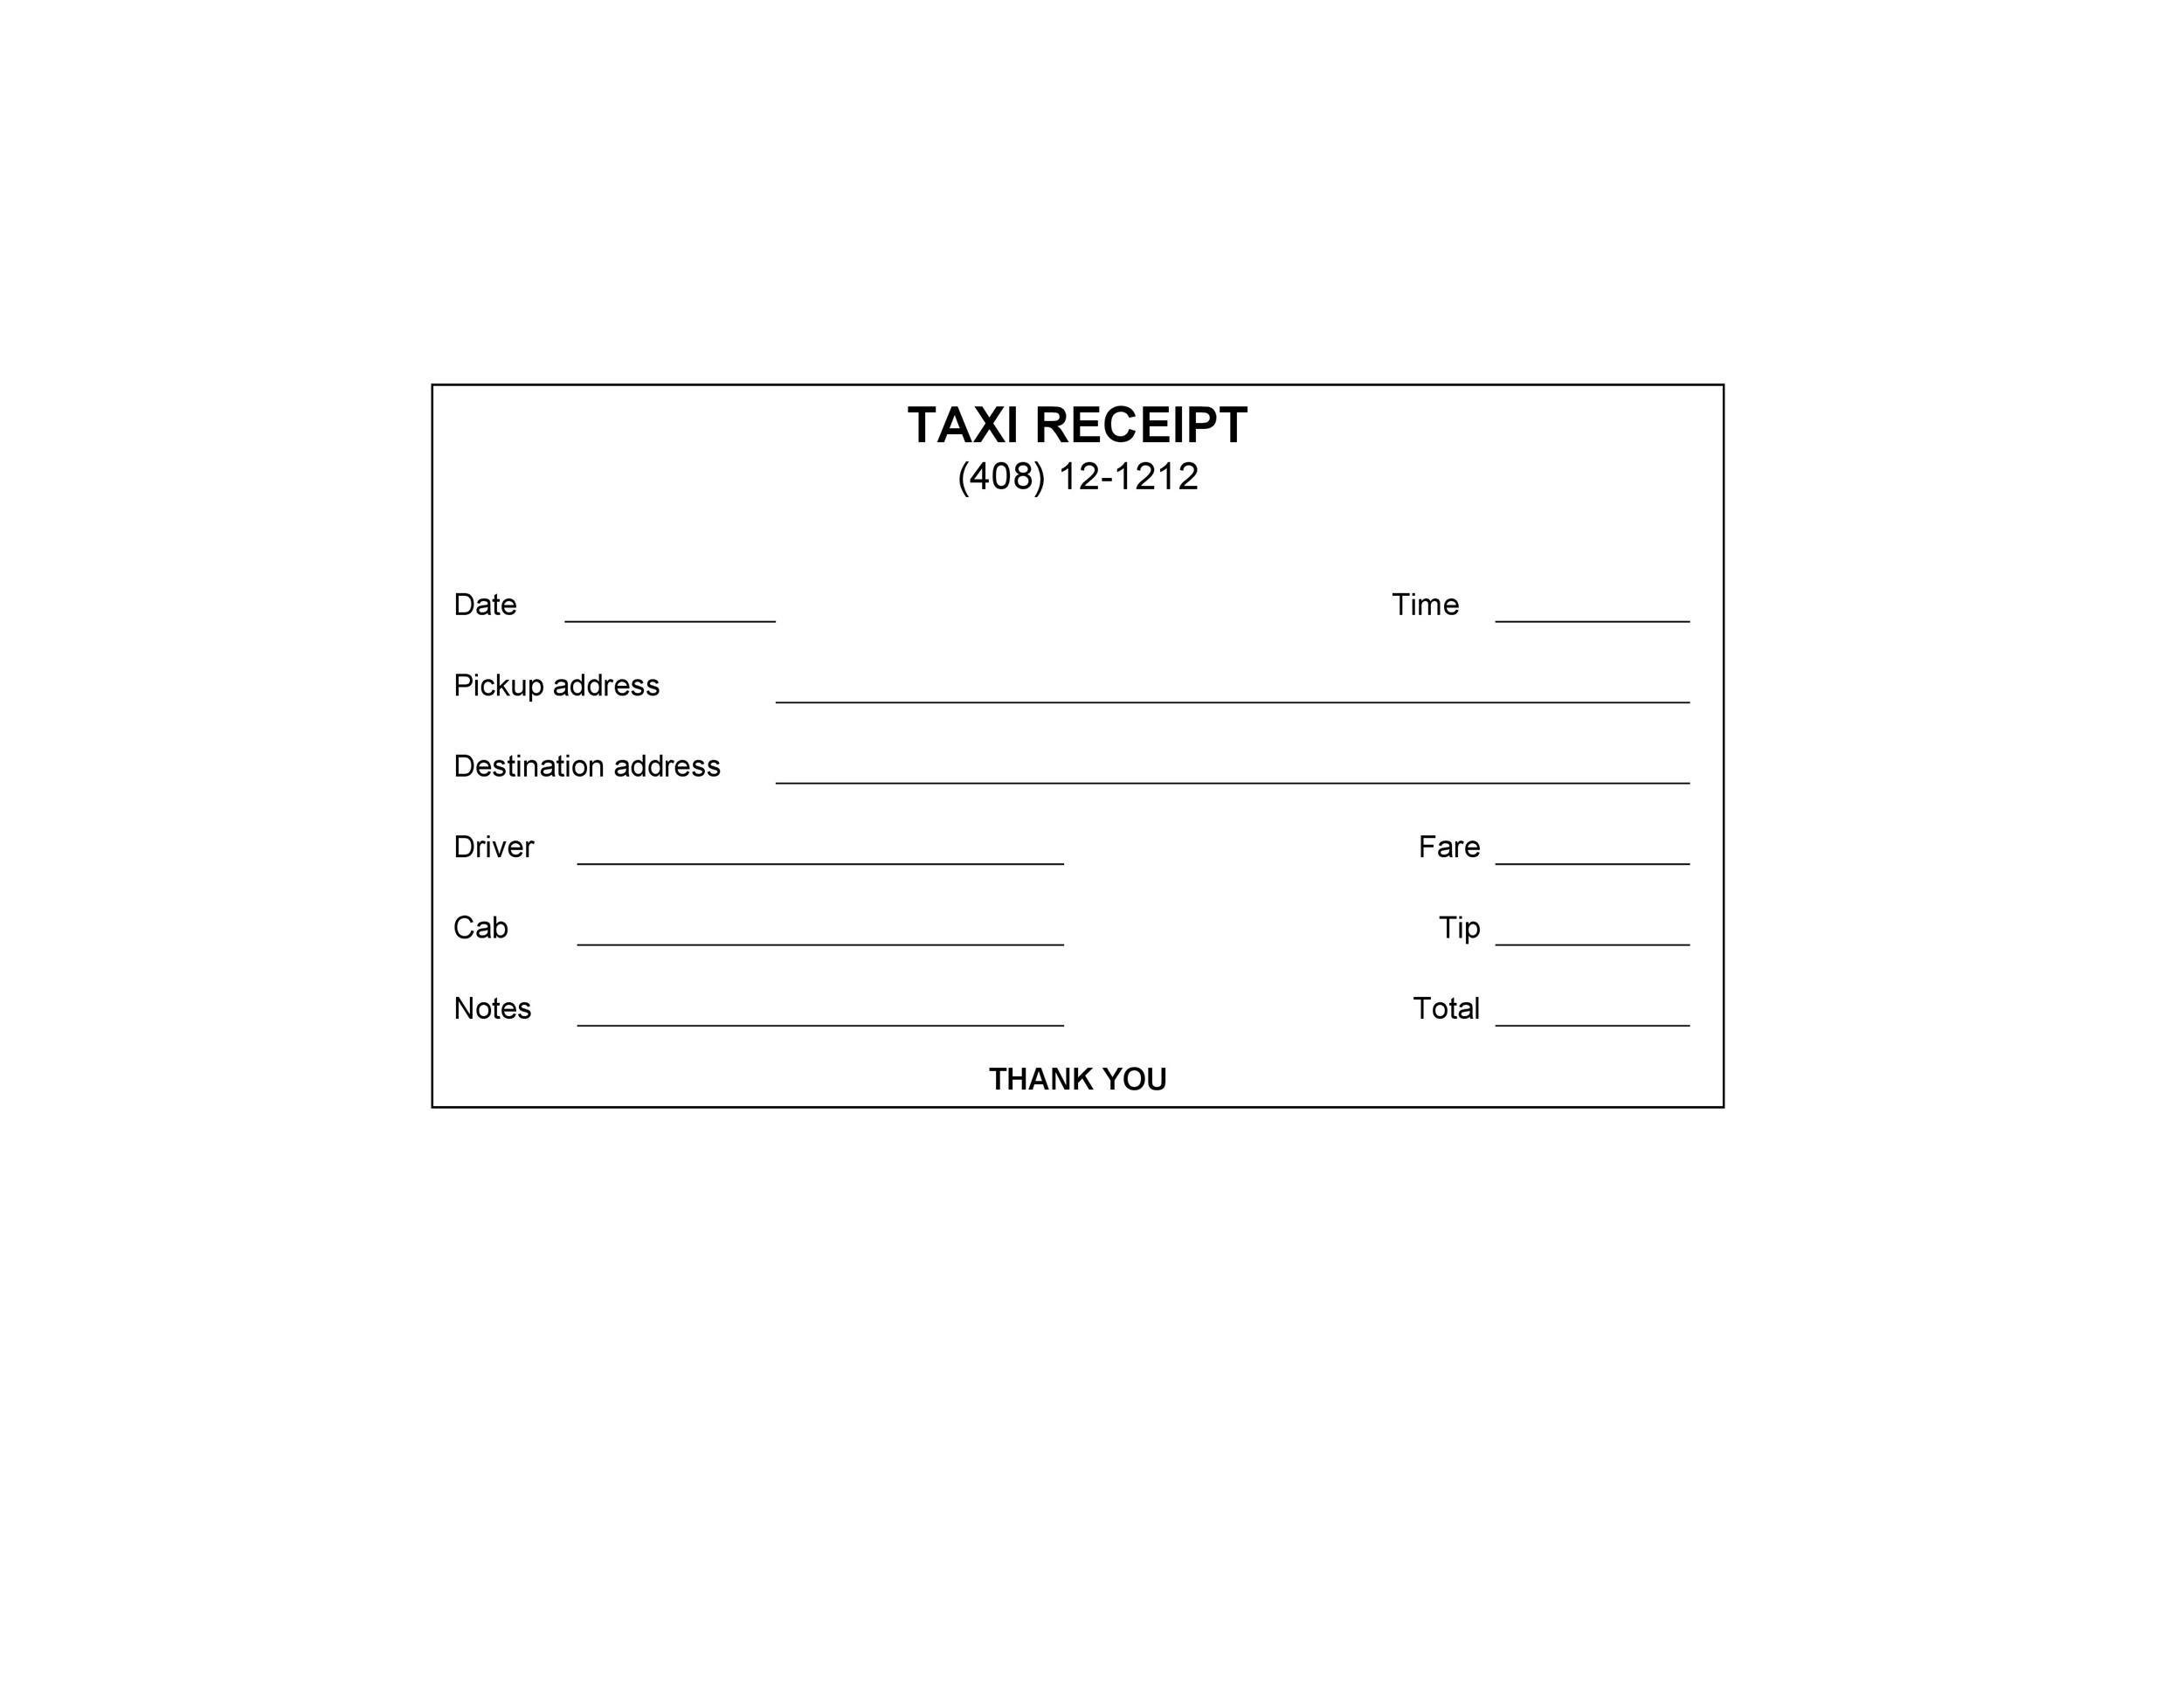 50+ Free Receipt Templates (Cash, Sales, Donation, Taxi )